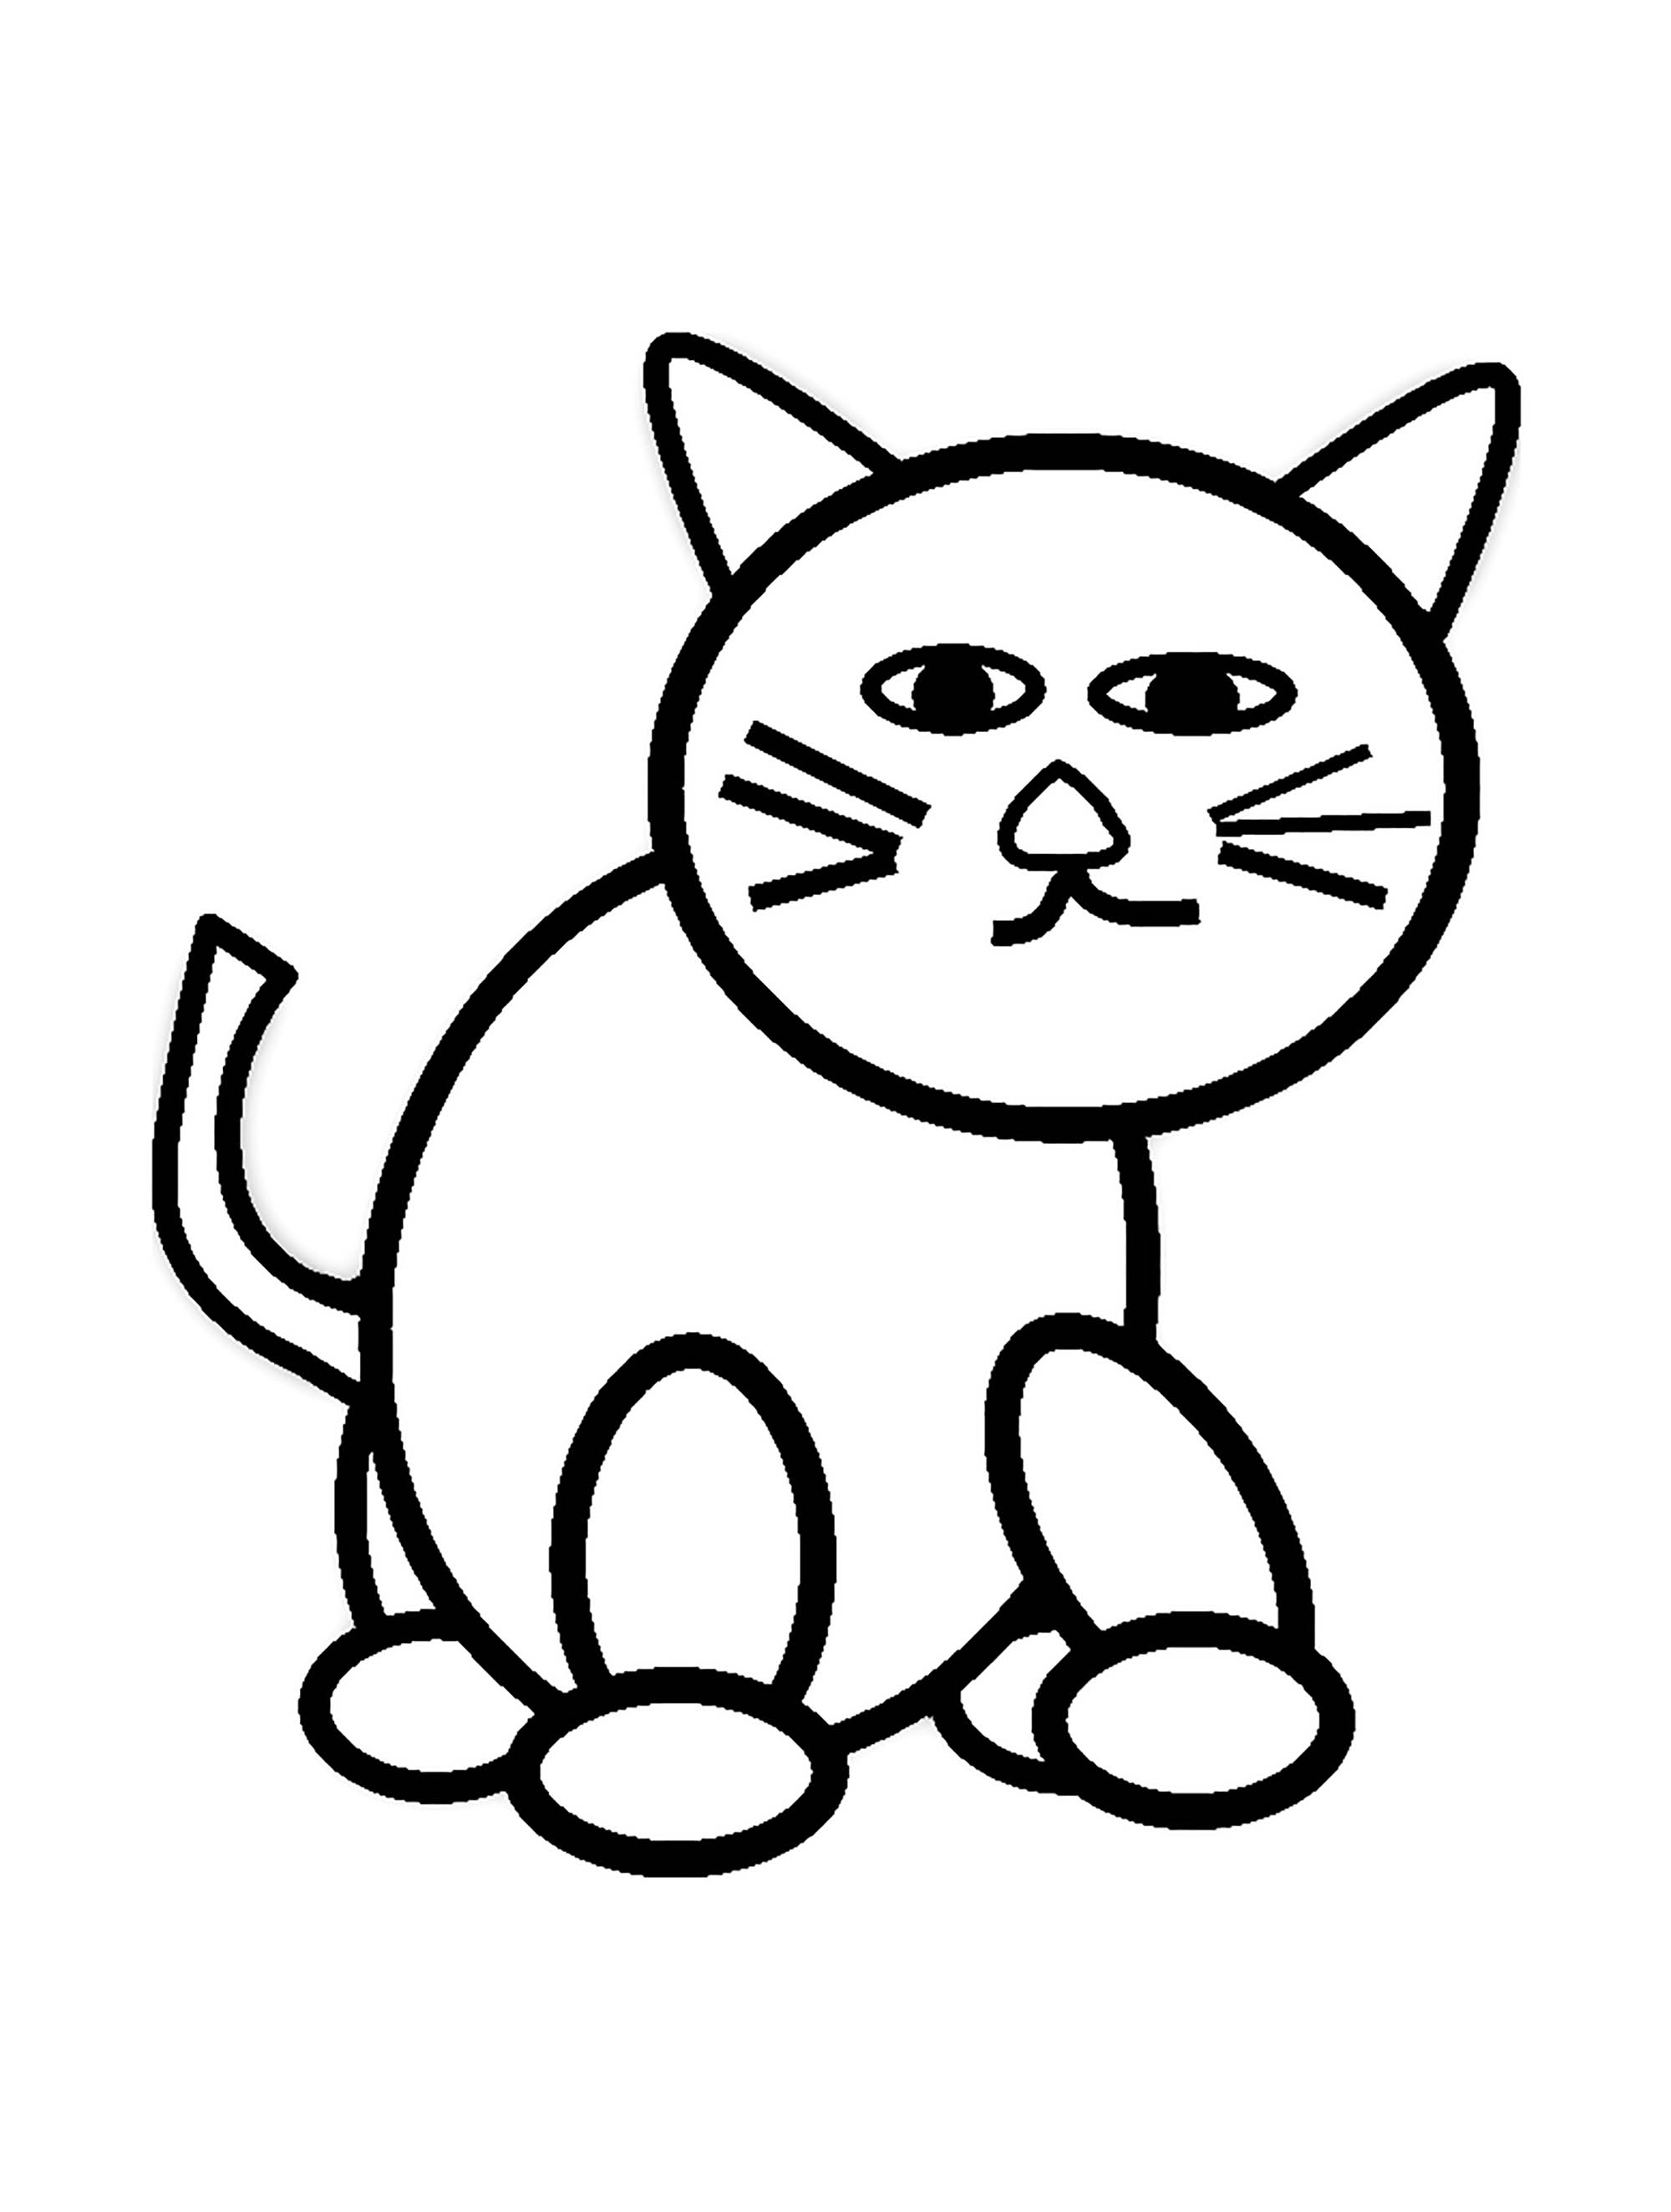 kids coloring pages kitten free printable cat coloring pages for kids pages coloring kids kitten